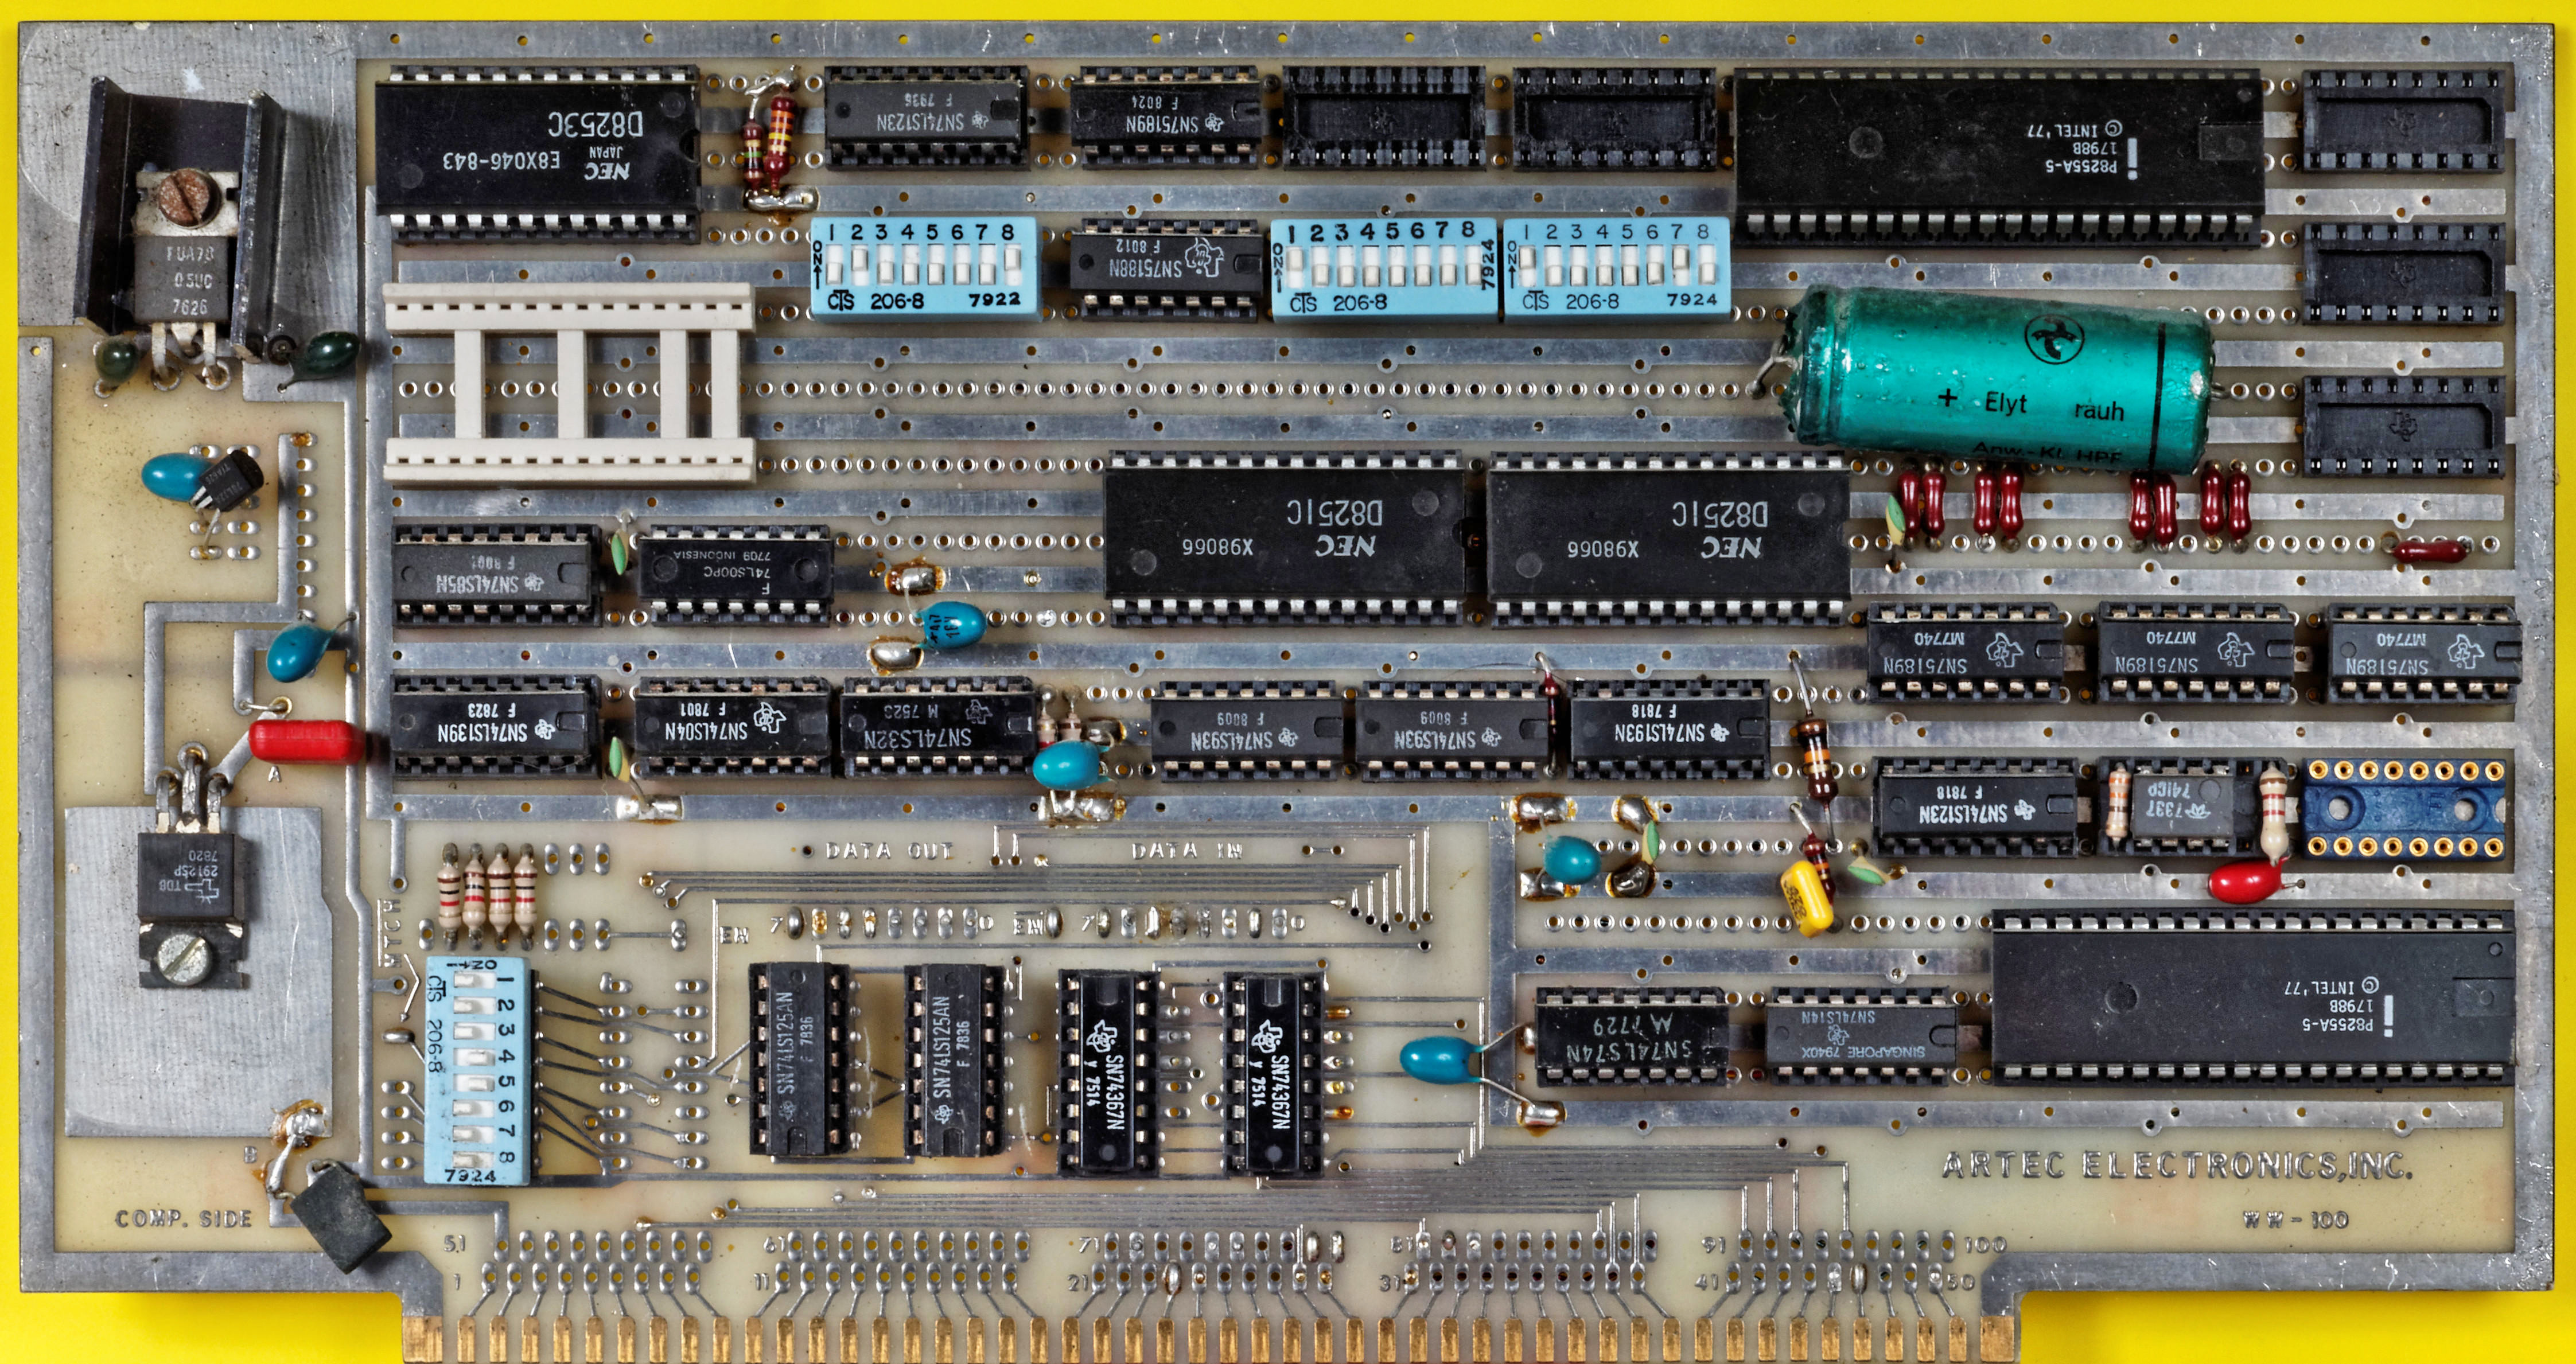 This should be Z-80-IO-board-front.jpeg.  Is it missing?